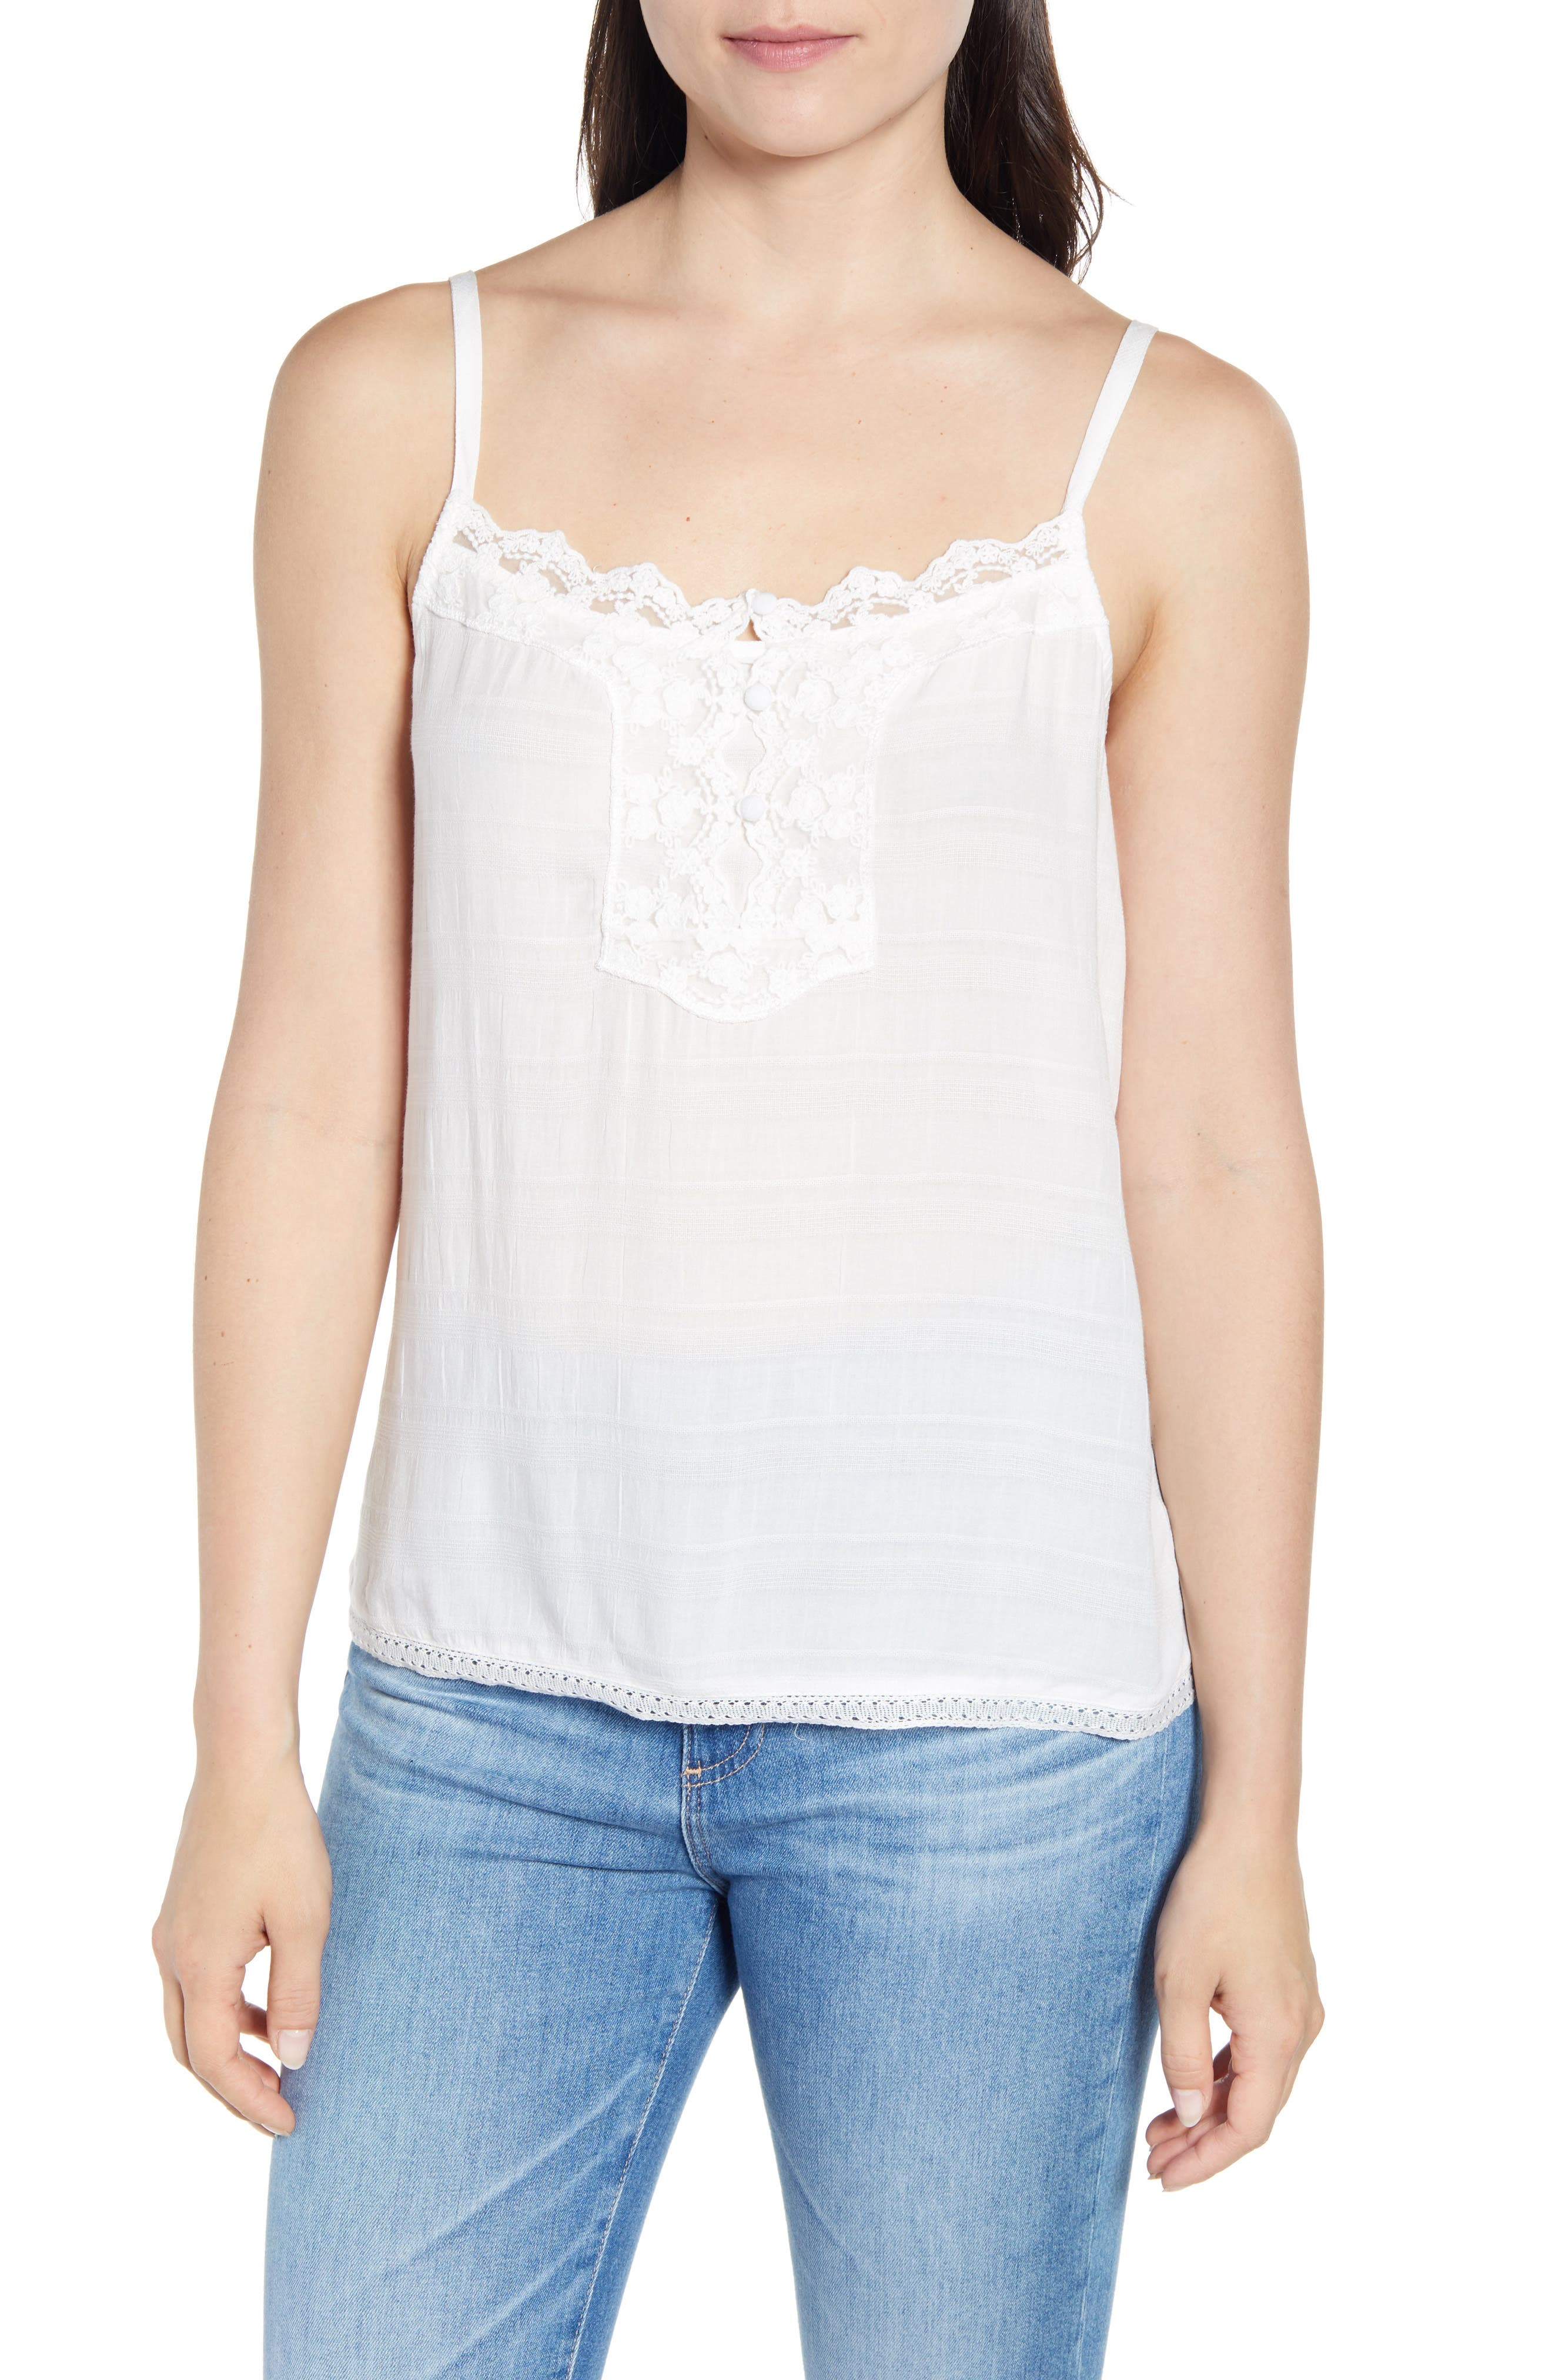 Wit & Wisdom Embroidery Detail Camisole, White (Nordstrom Exclusive)